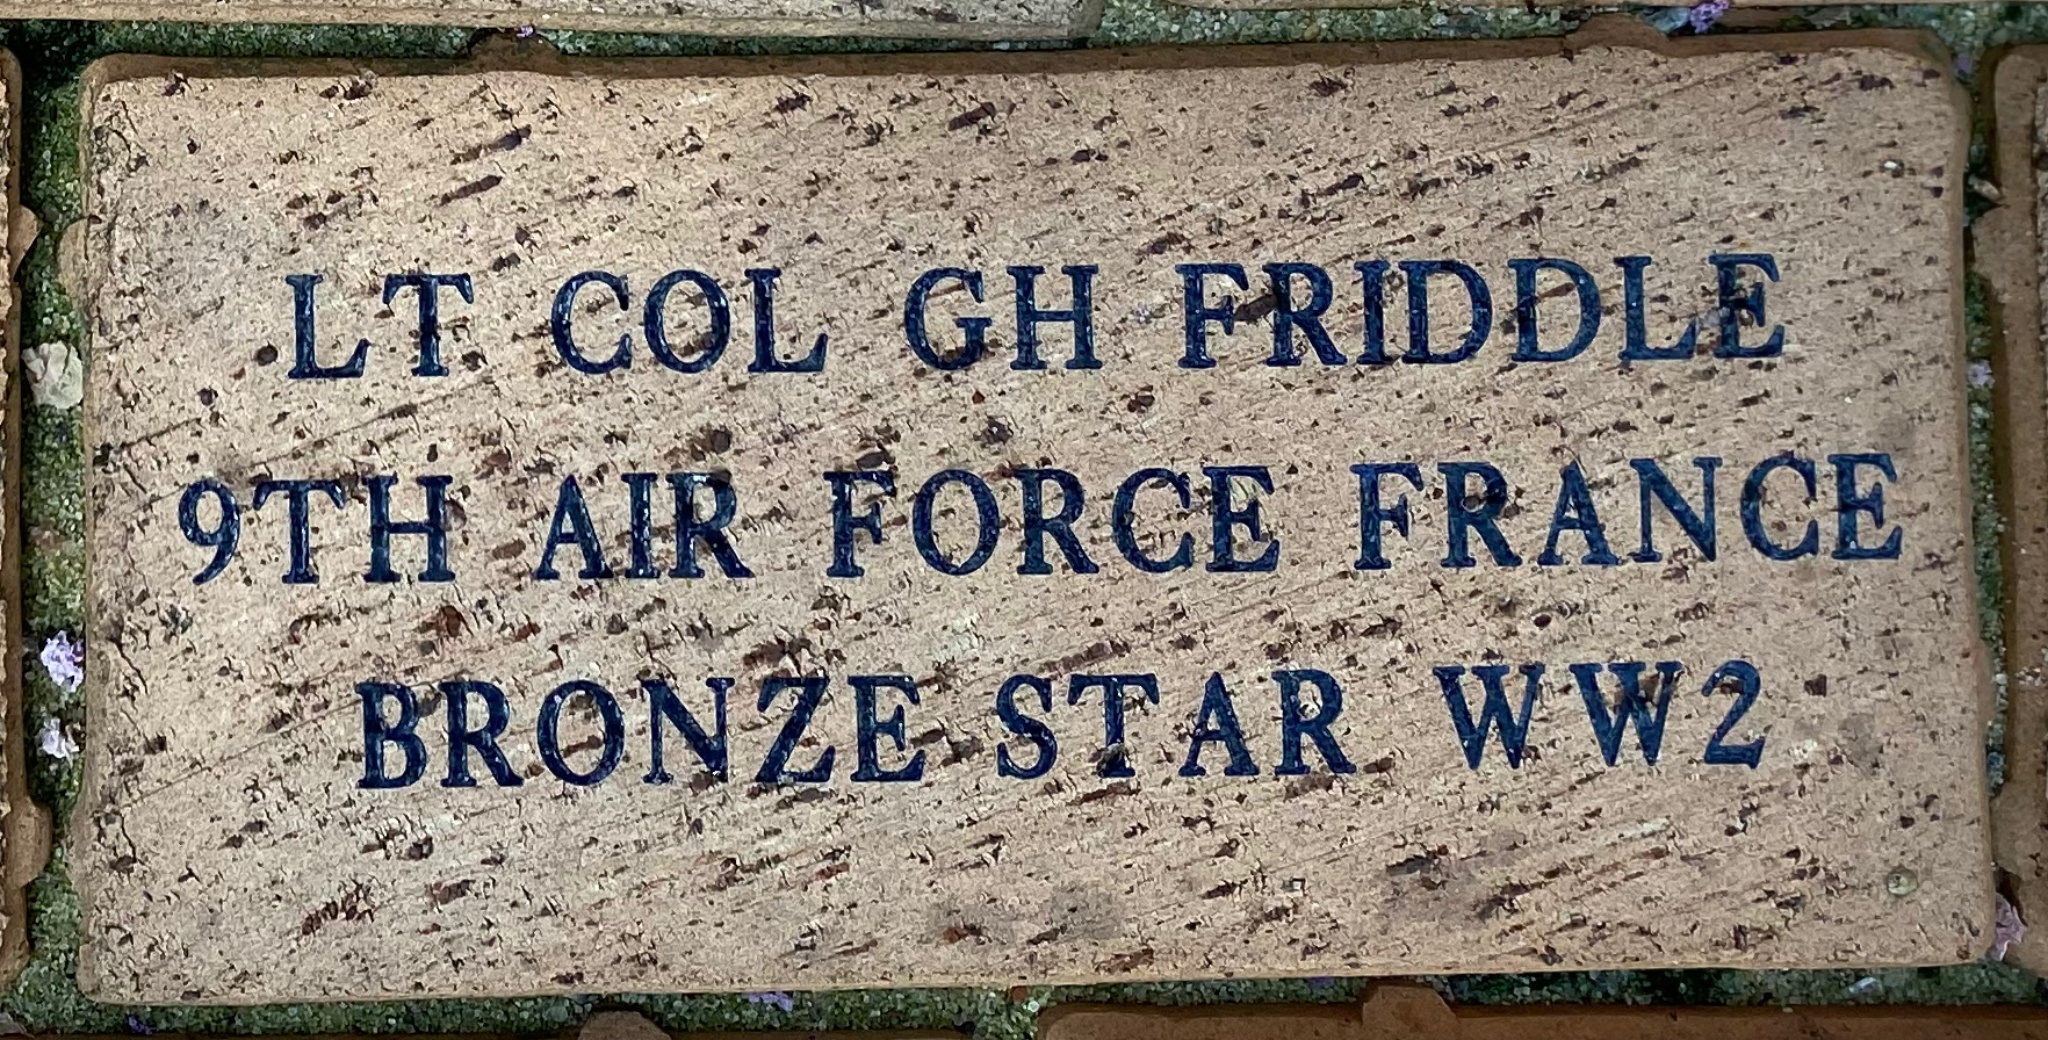 LT COL GH FRIDDLE 9TH AIR FORCE FRANCE BRONZE STAR WW2